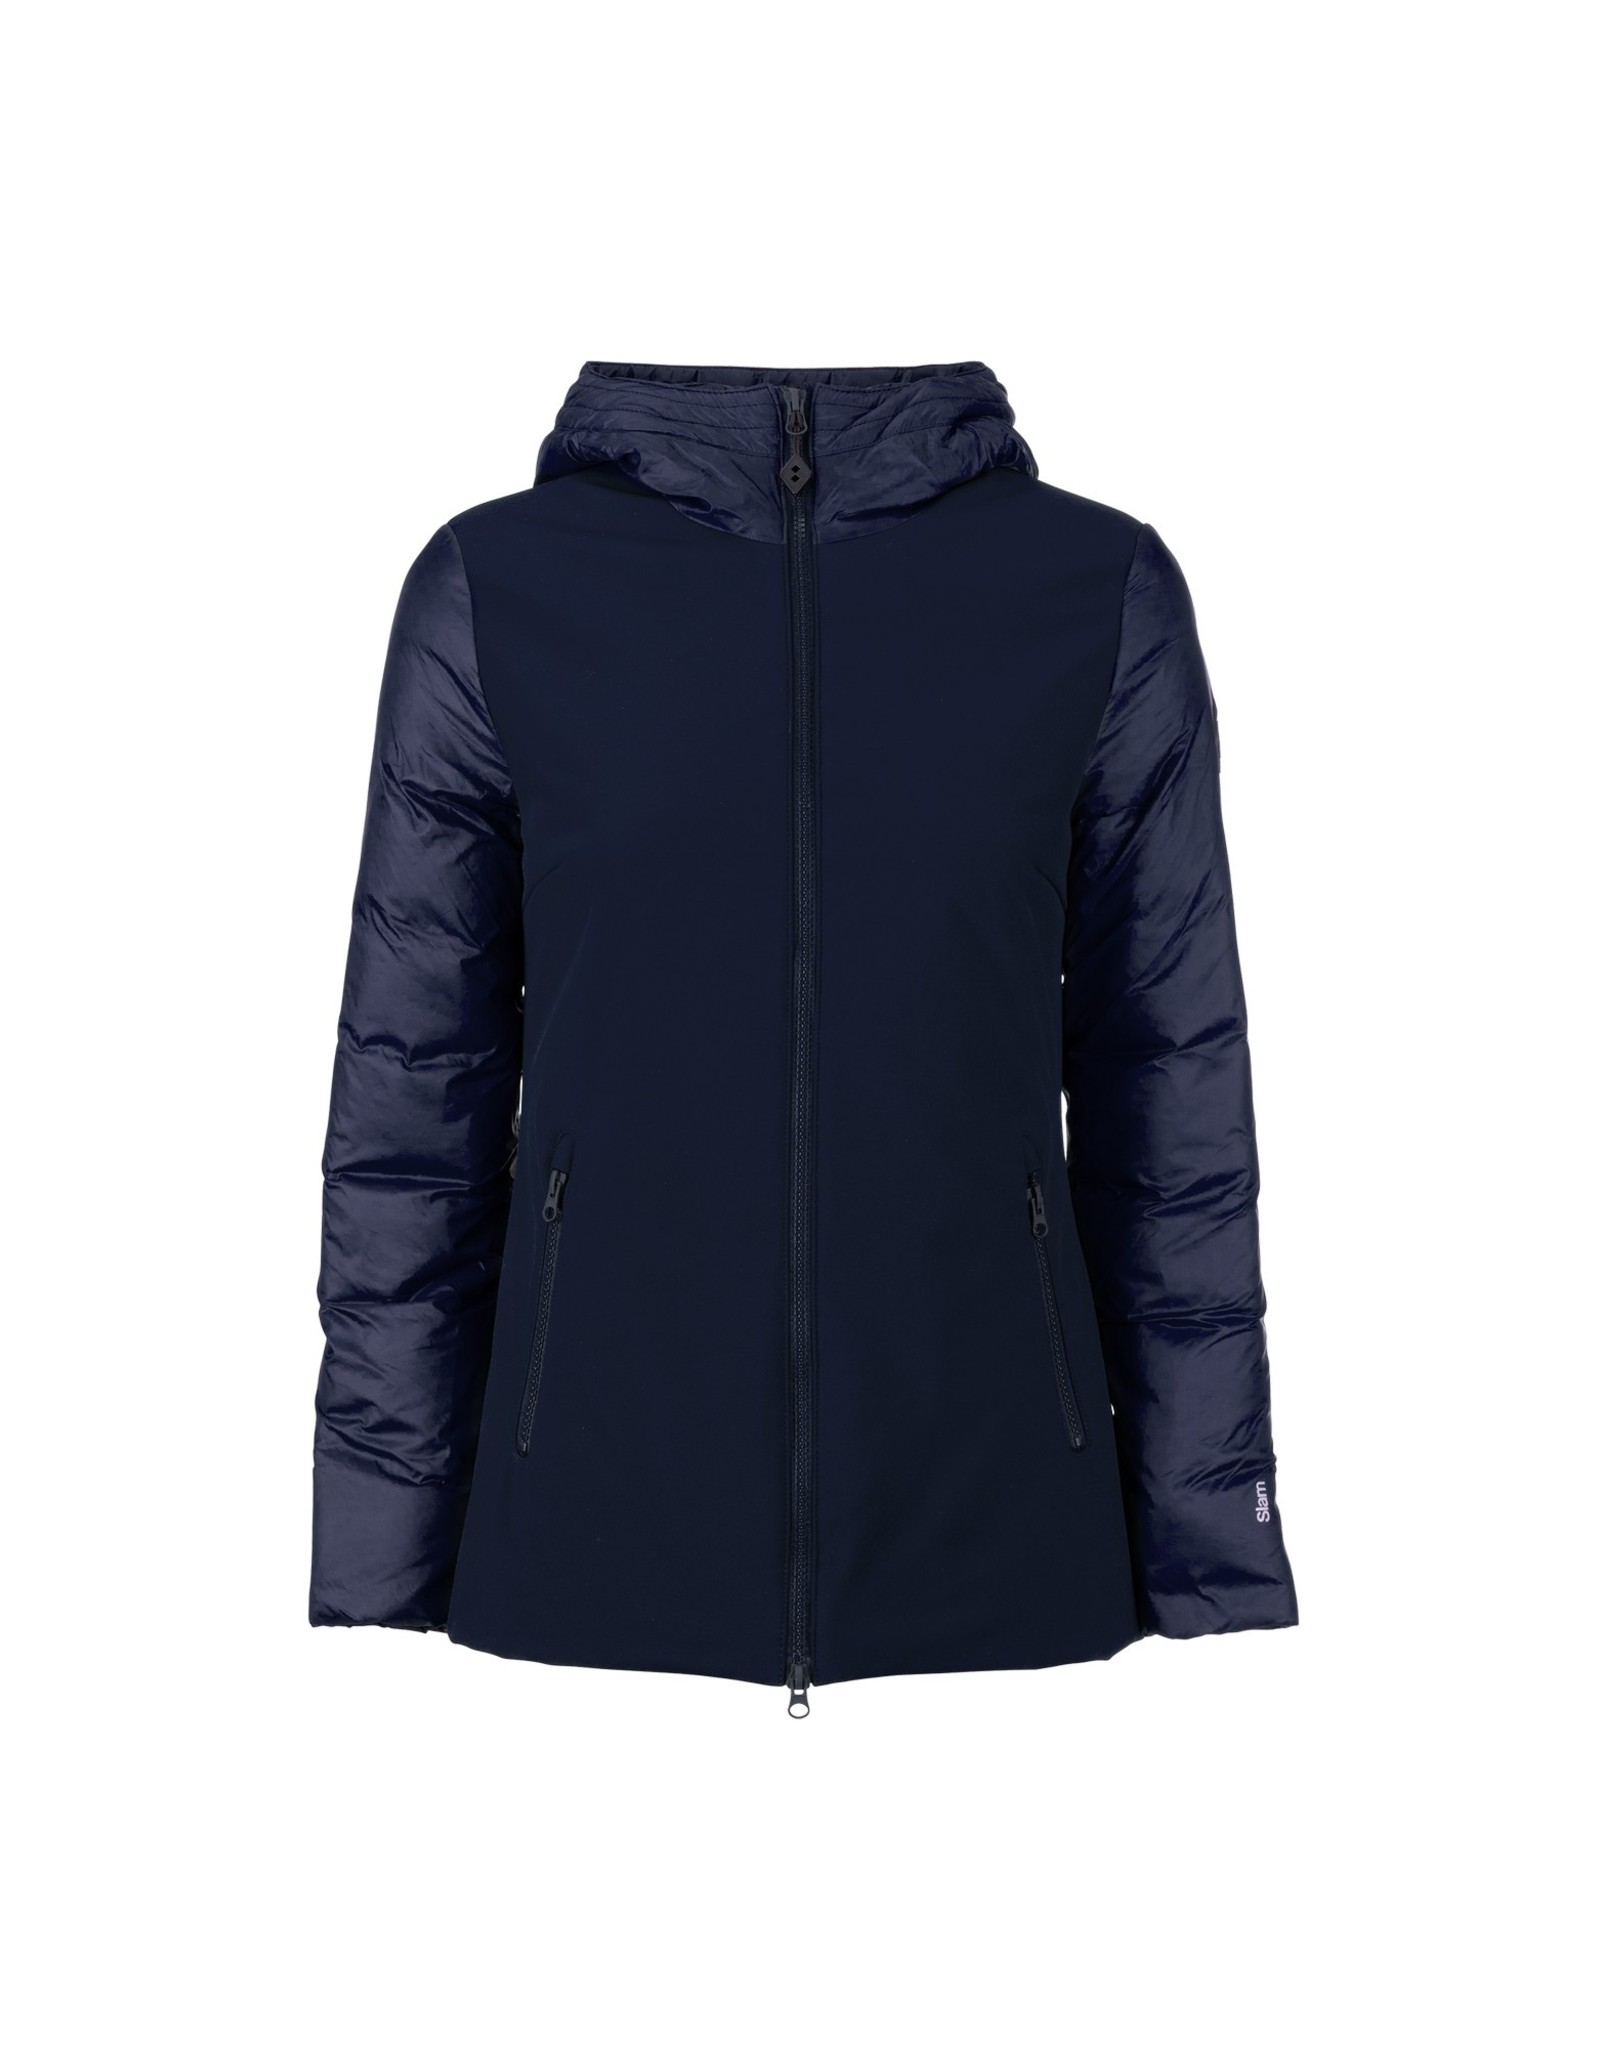 Slam Jacket Arbus - Light Navy ( E82 )